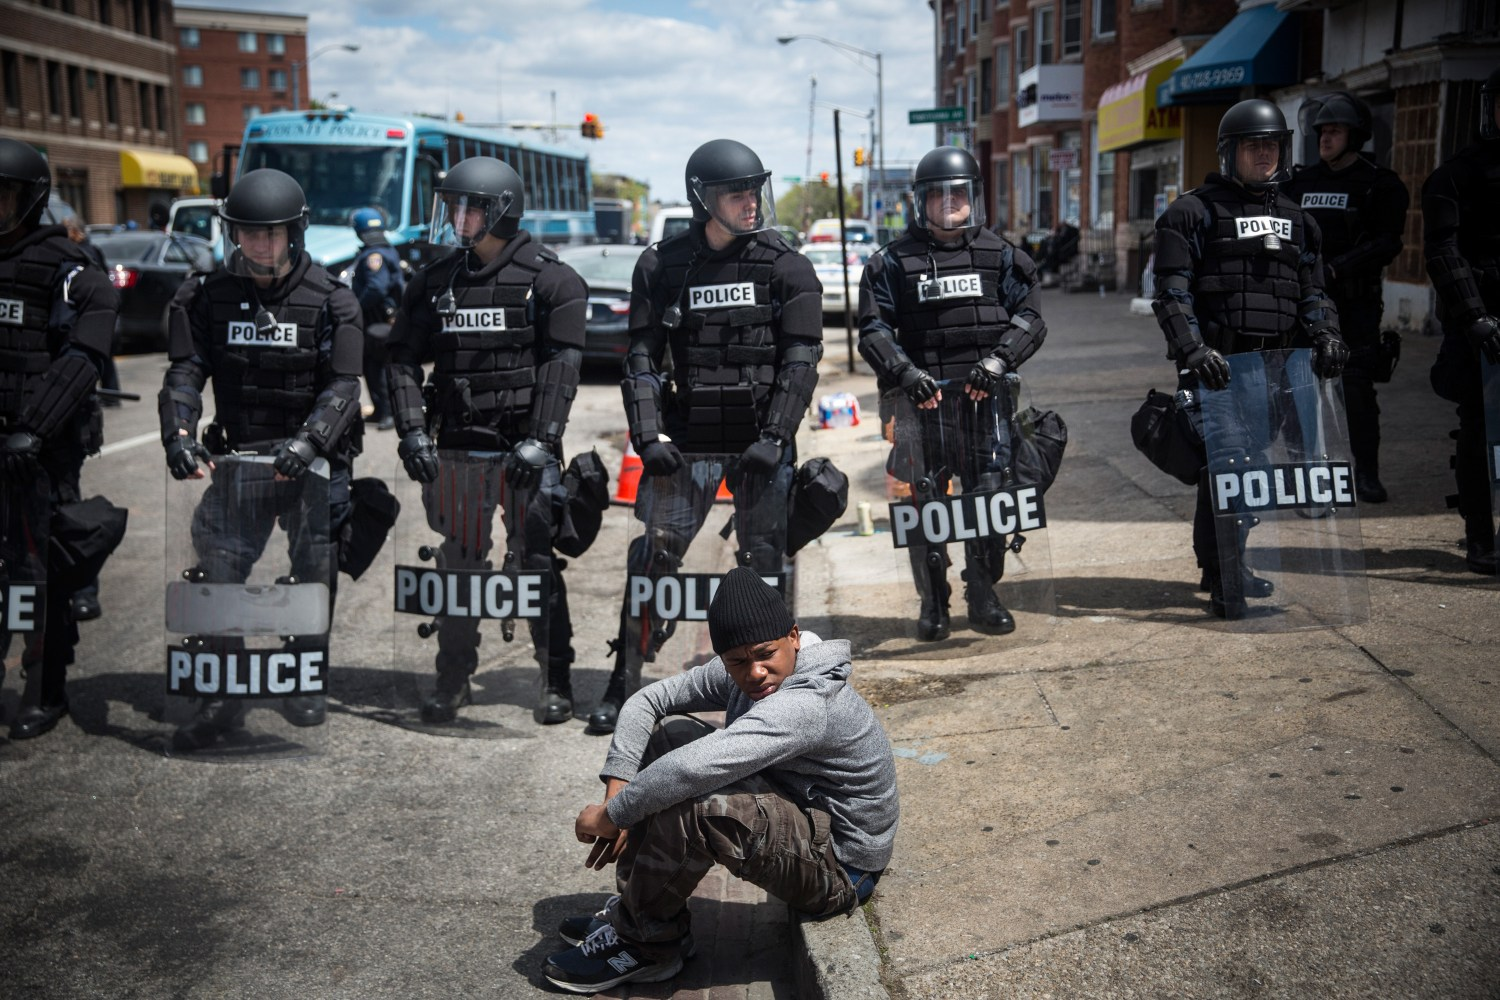 essay law order in baltimore nbc news national guard activated to calm tensions in baltimore in wake of riots after death of freddie